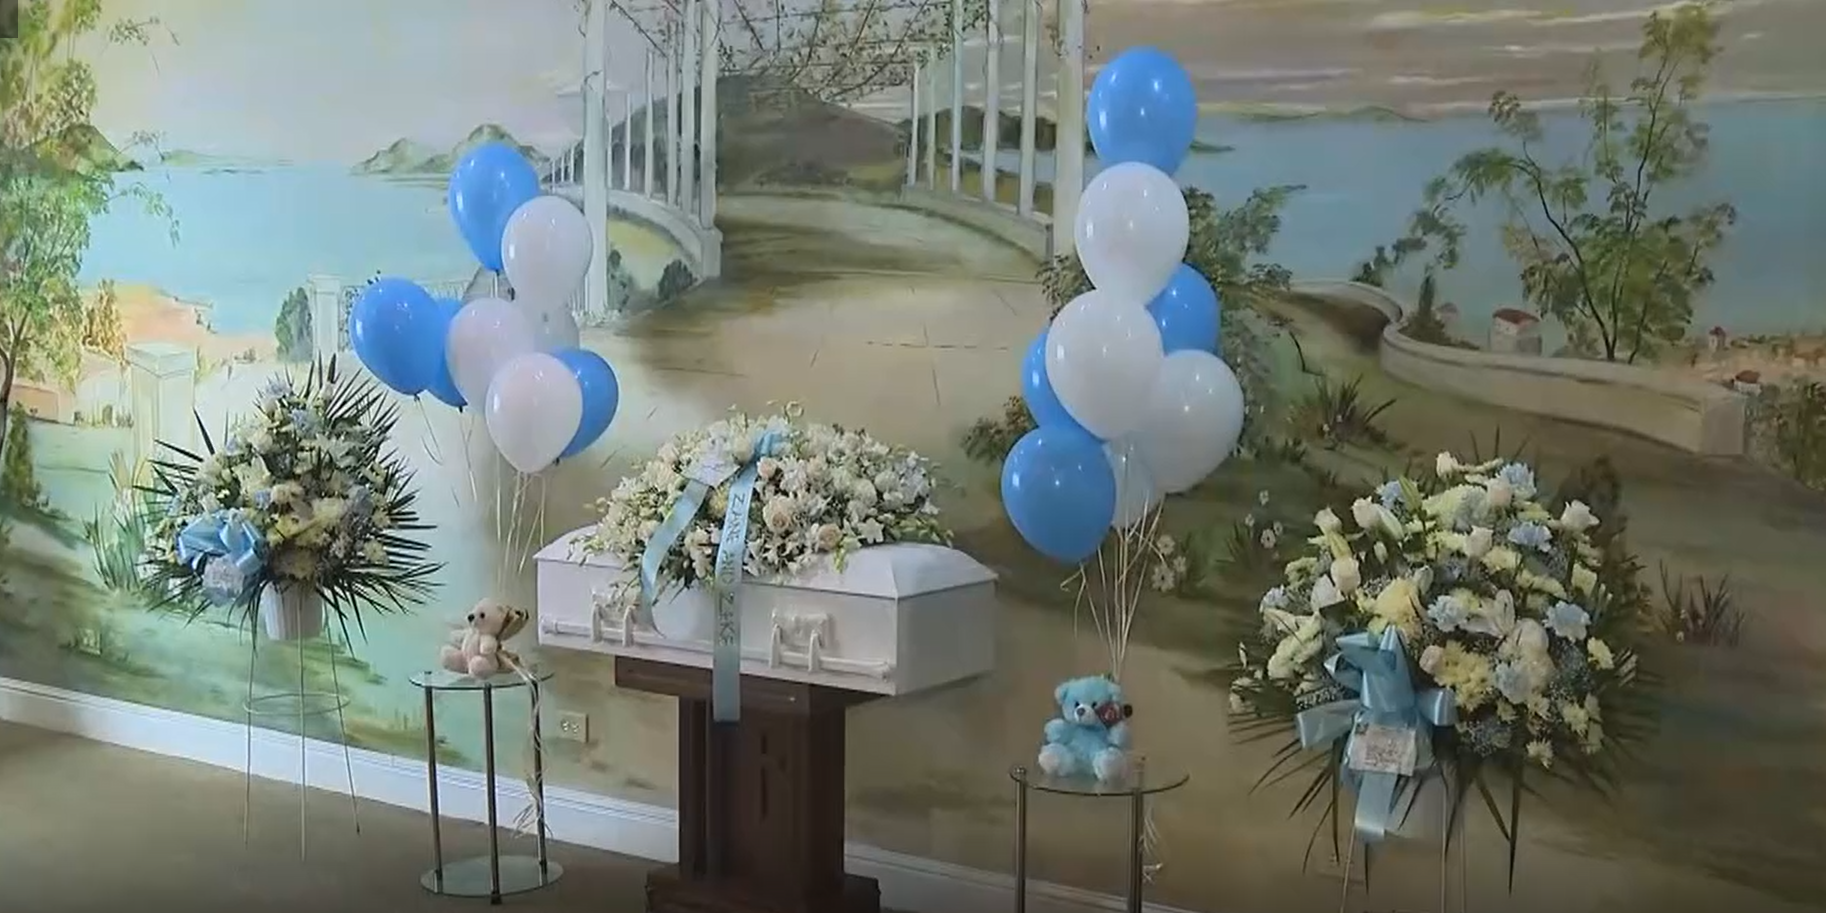 funeral for twin baby boys in the bronx